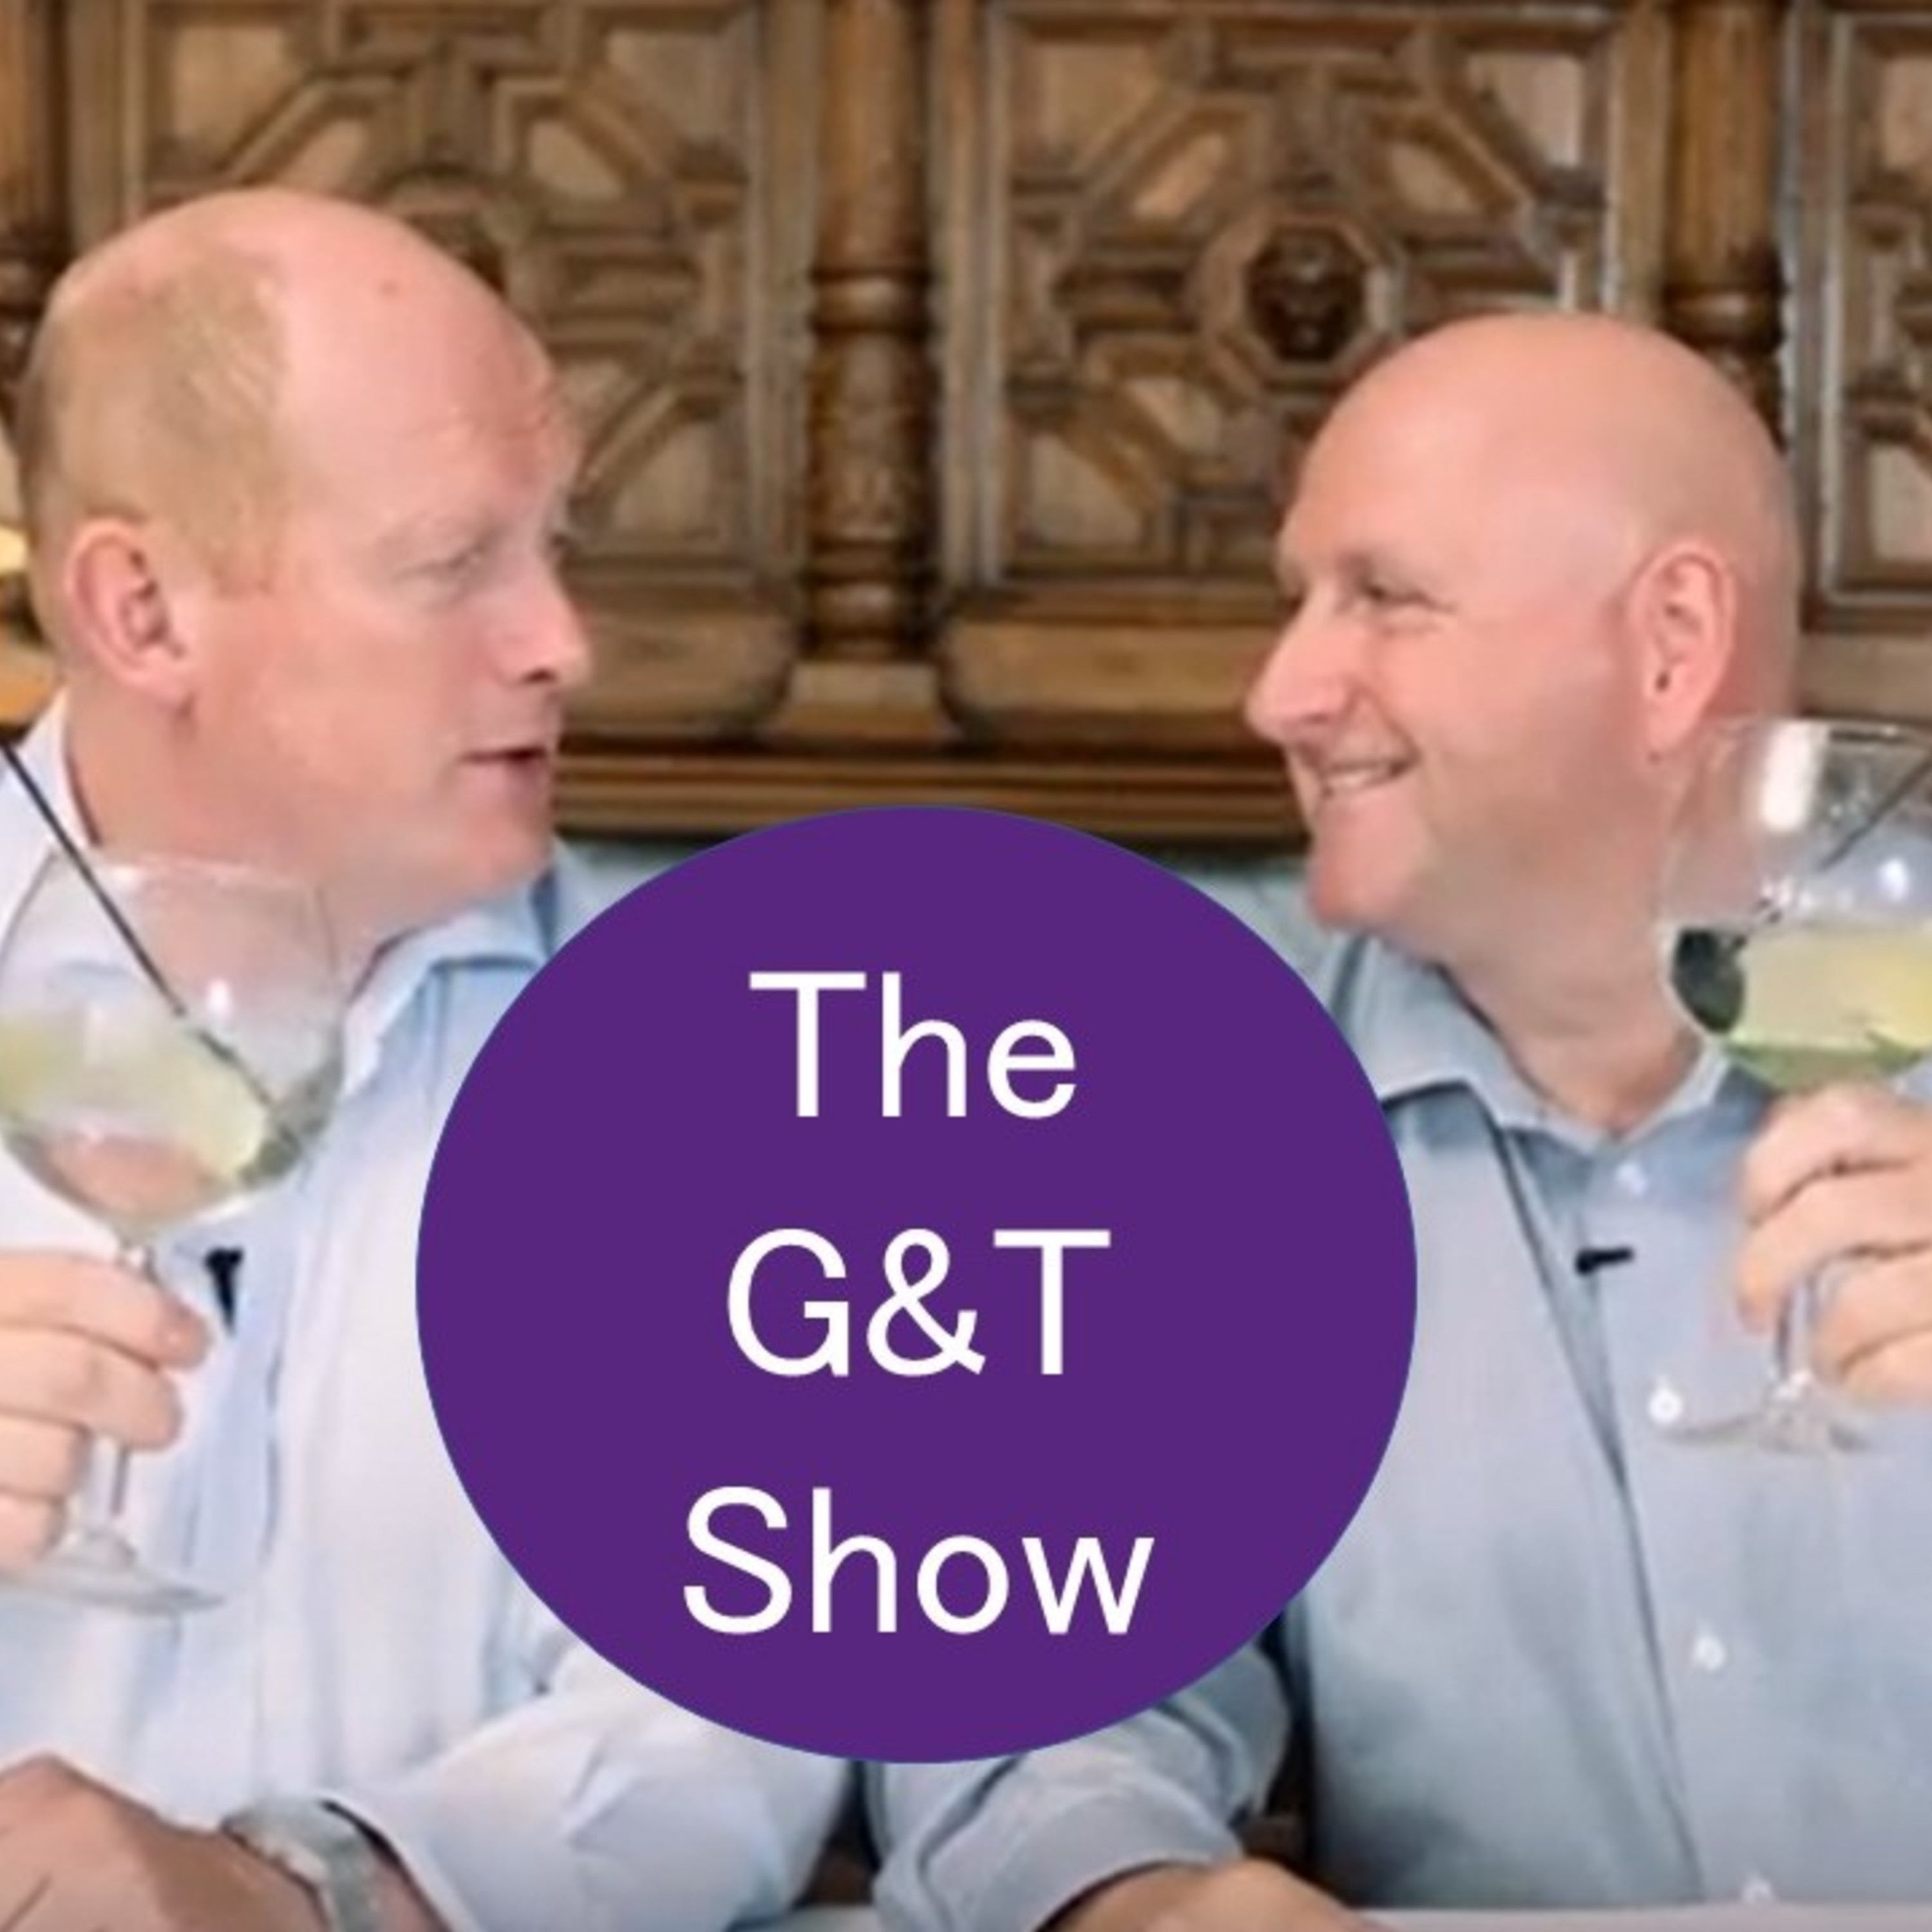 GBTV - G&T with Guy and Terry - How did the bromance begin?